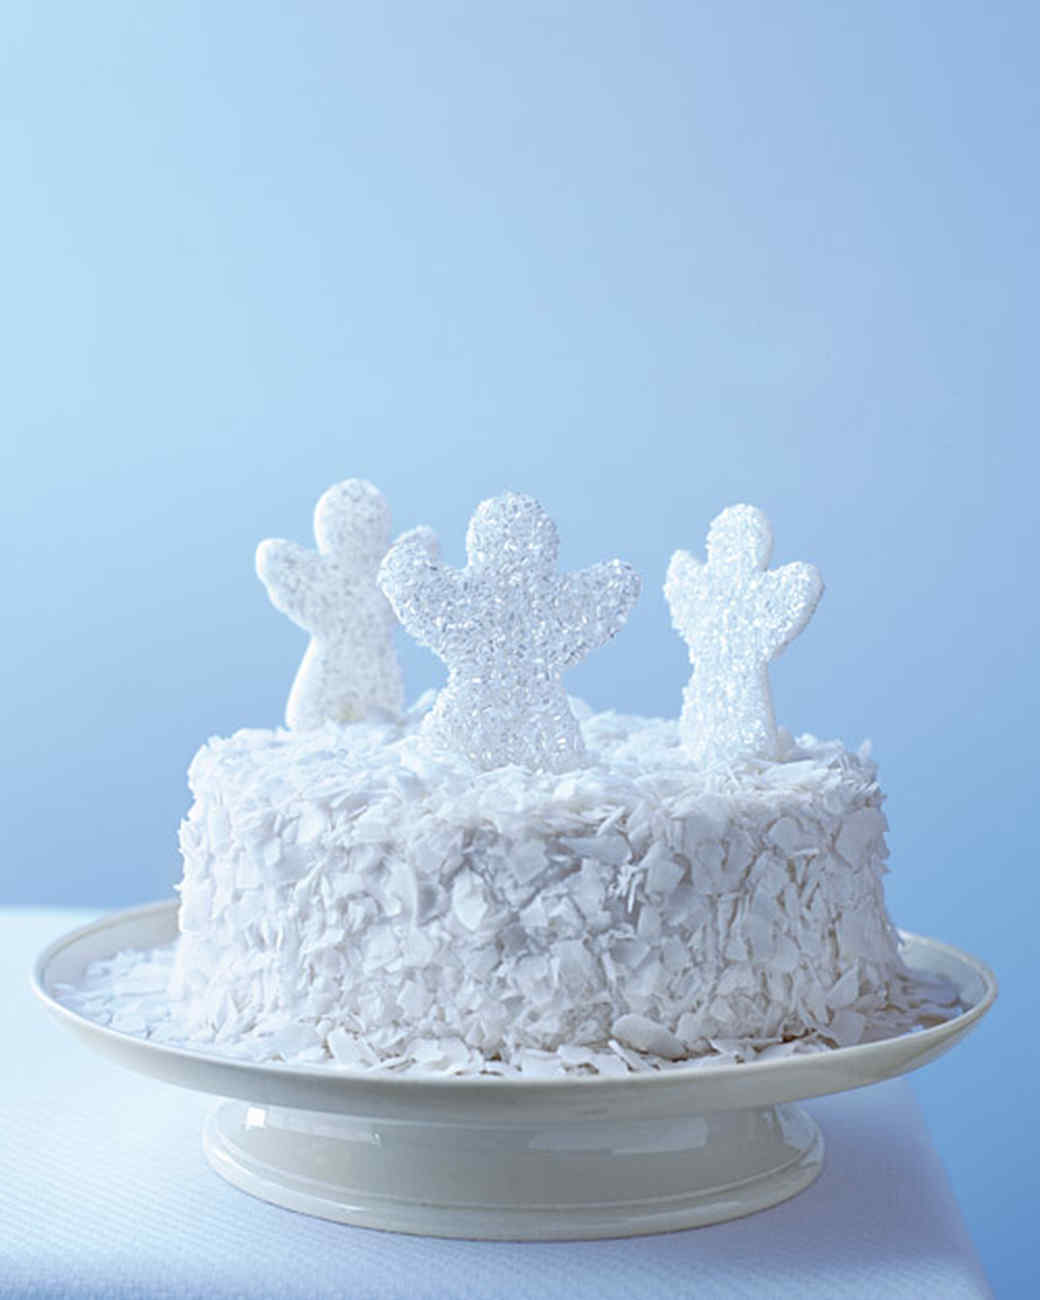 Christmas cake recipes martha stewart forumfinder Image collections